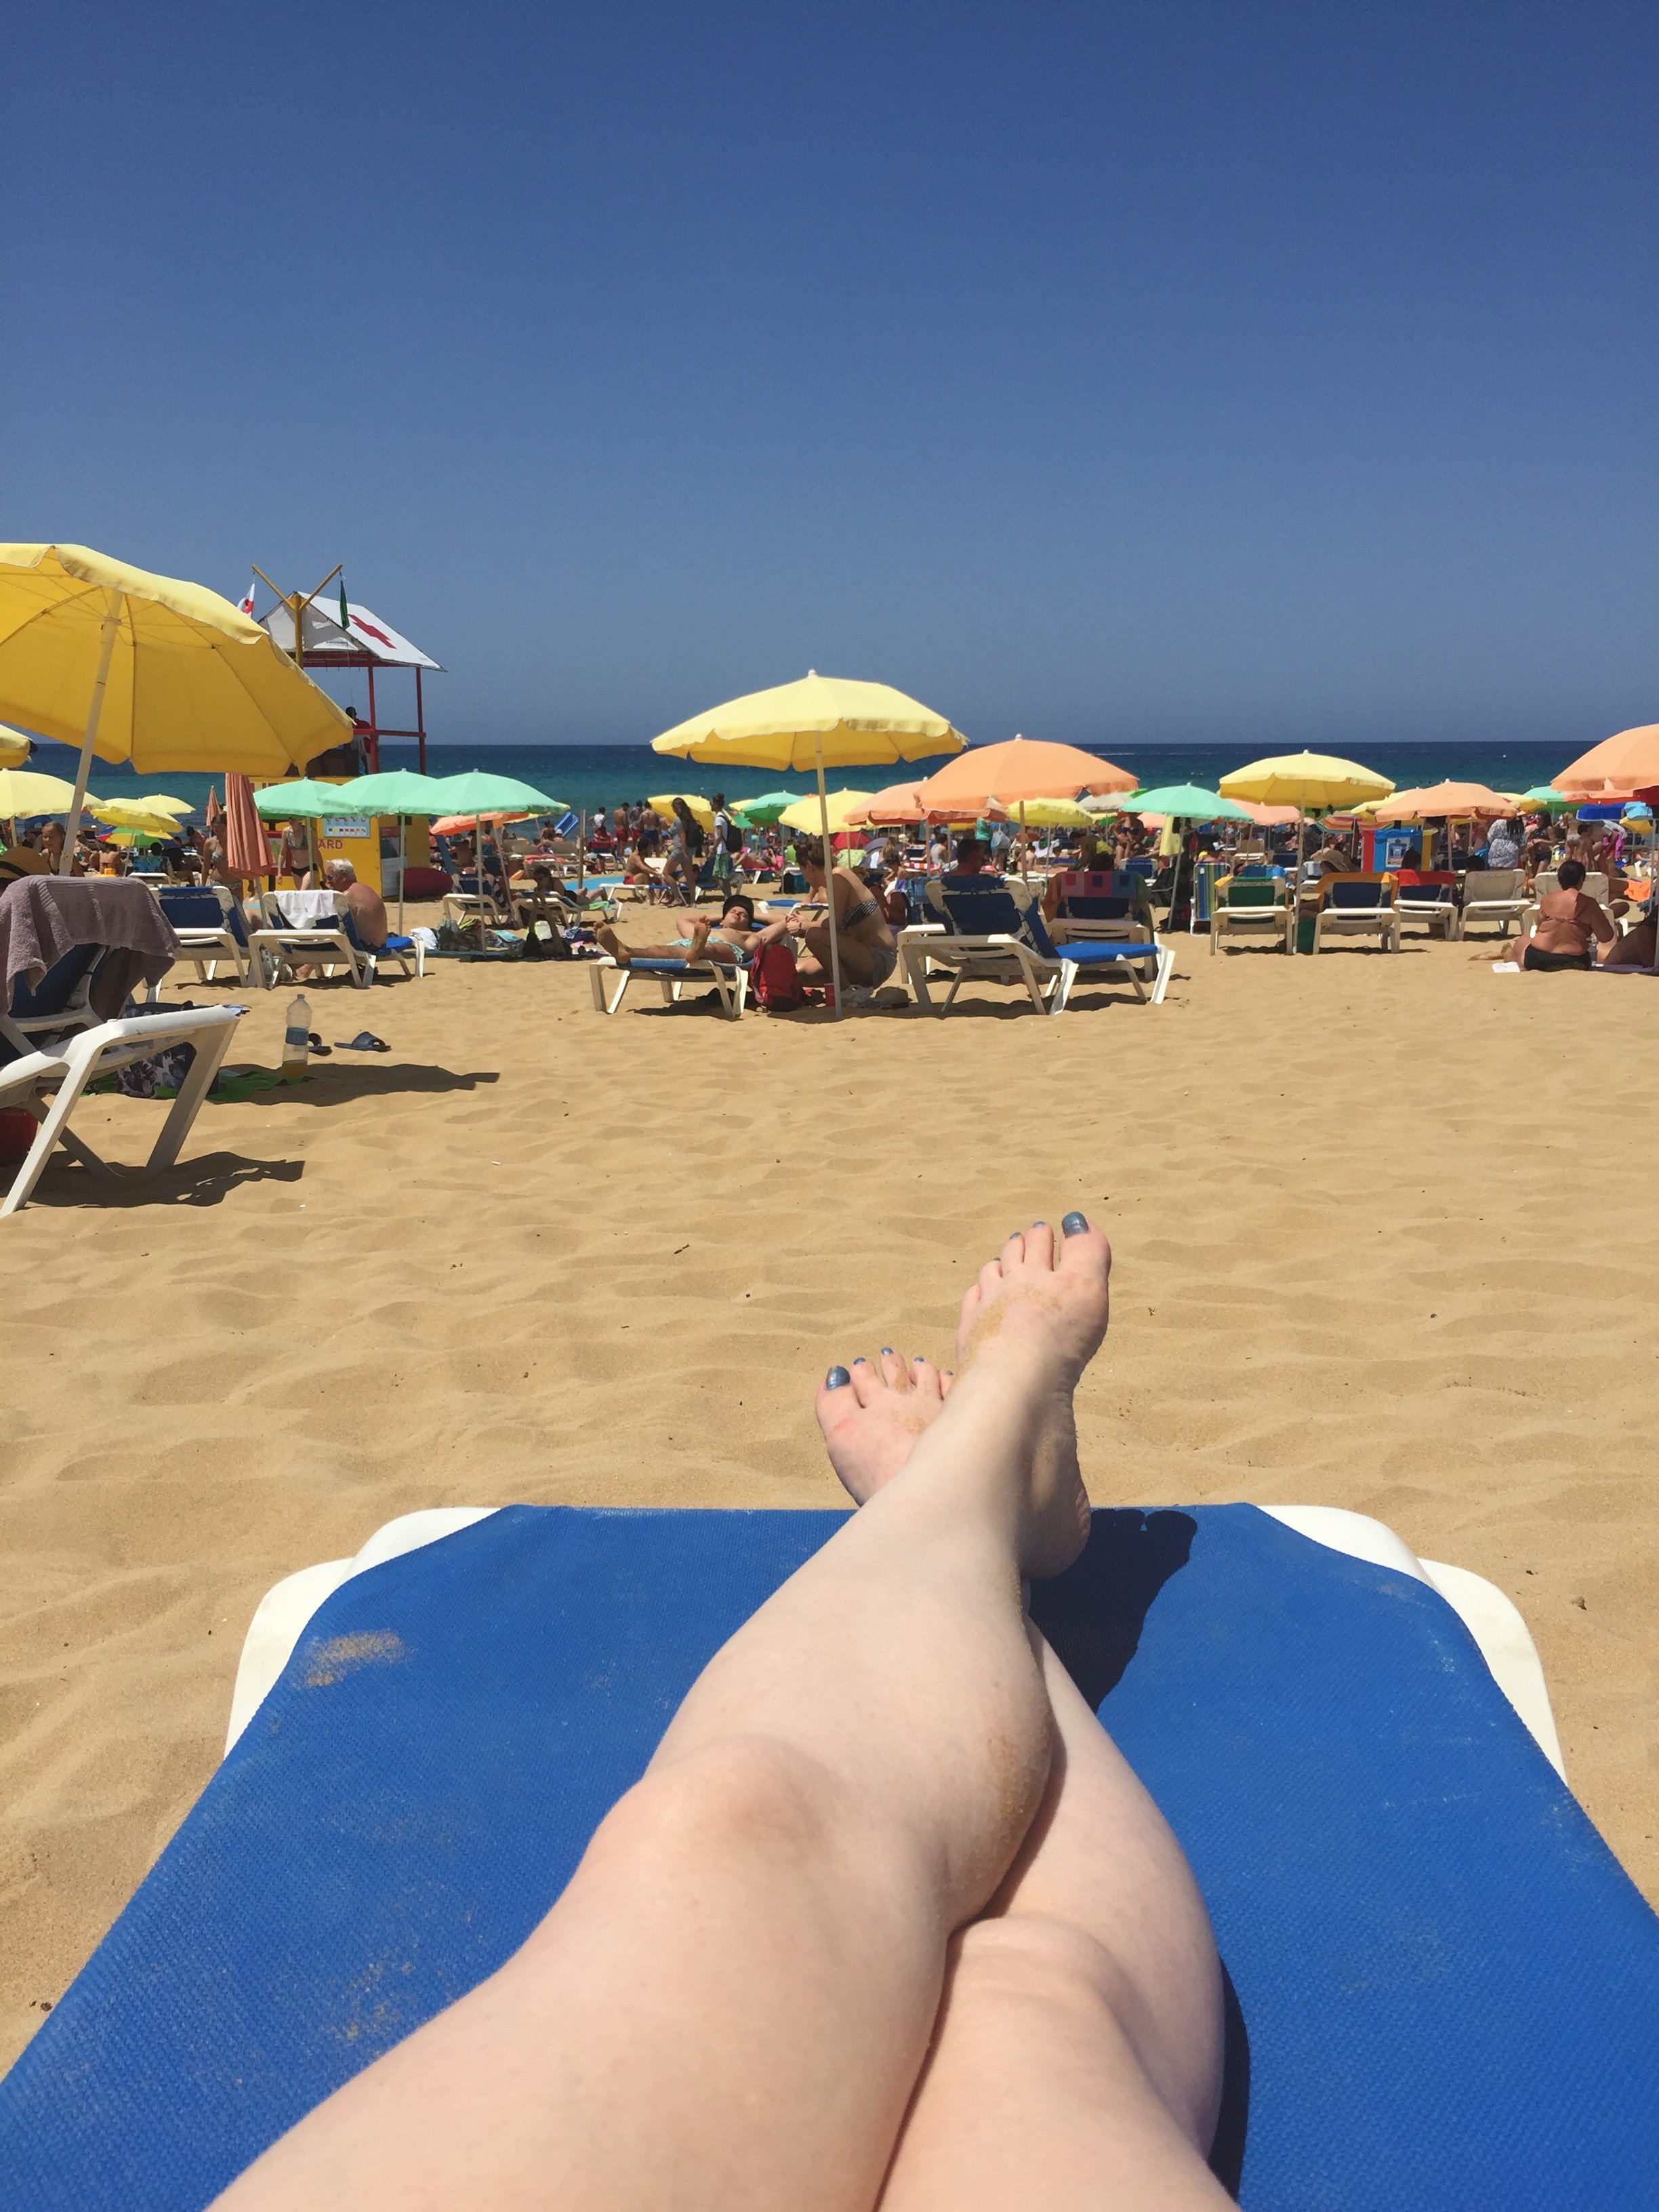 Malta beach, Golden Bay, sunbathing on lounger, bright parasols